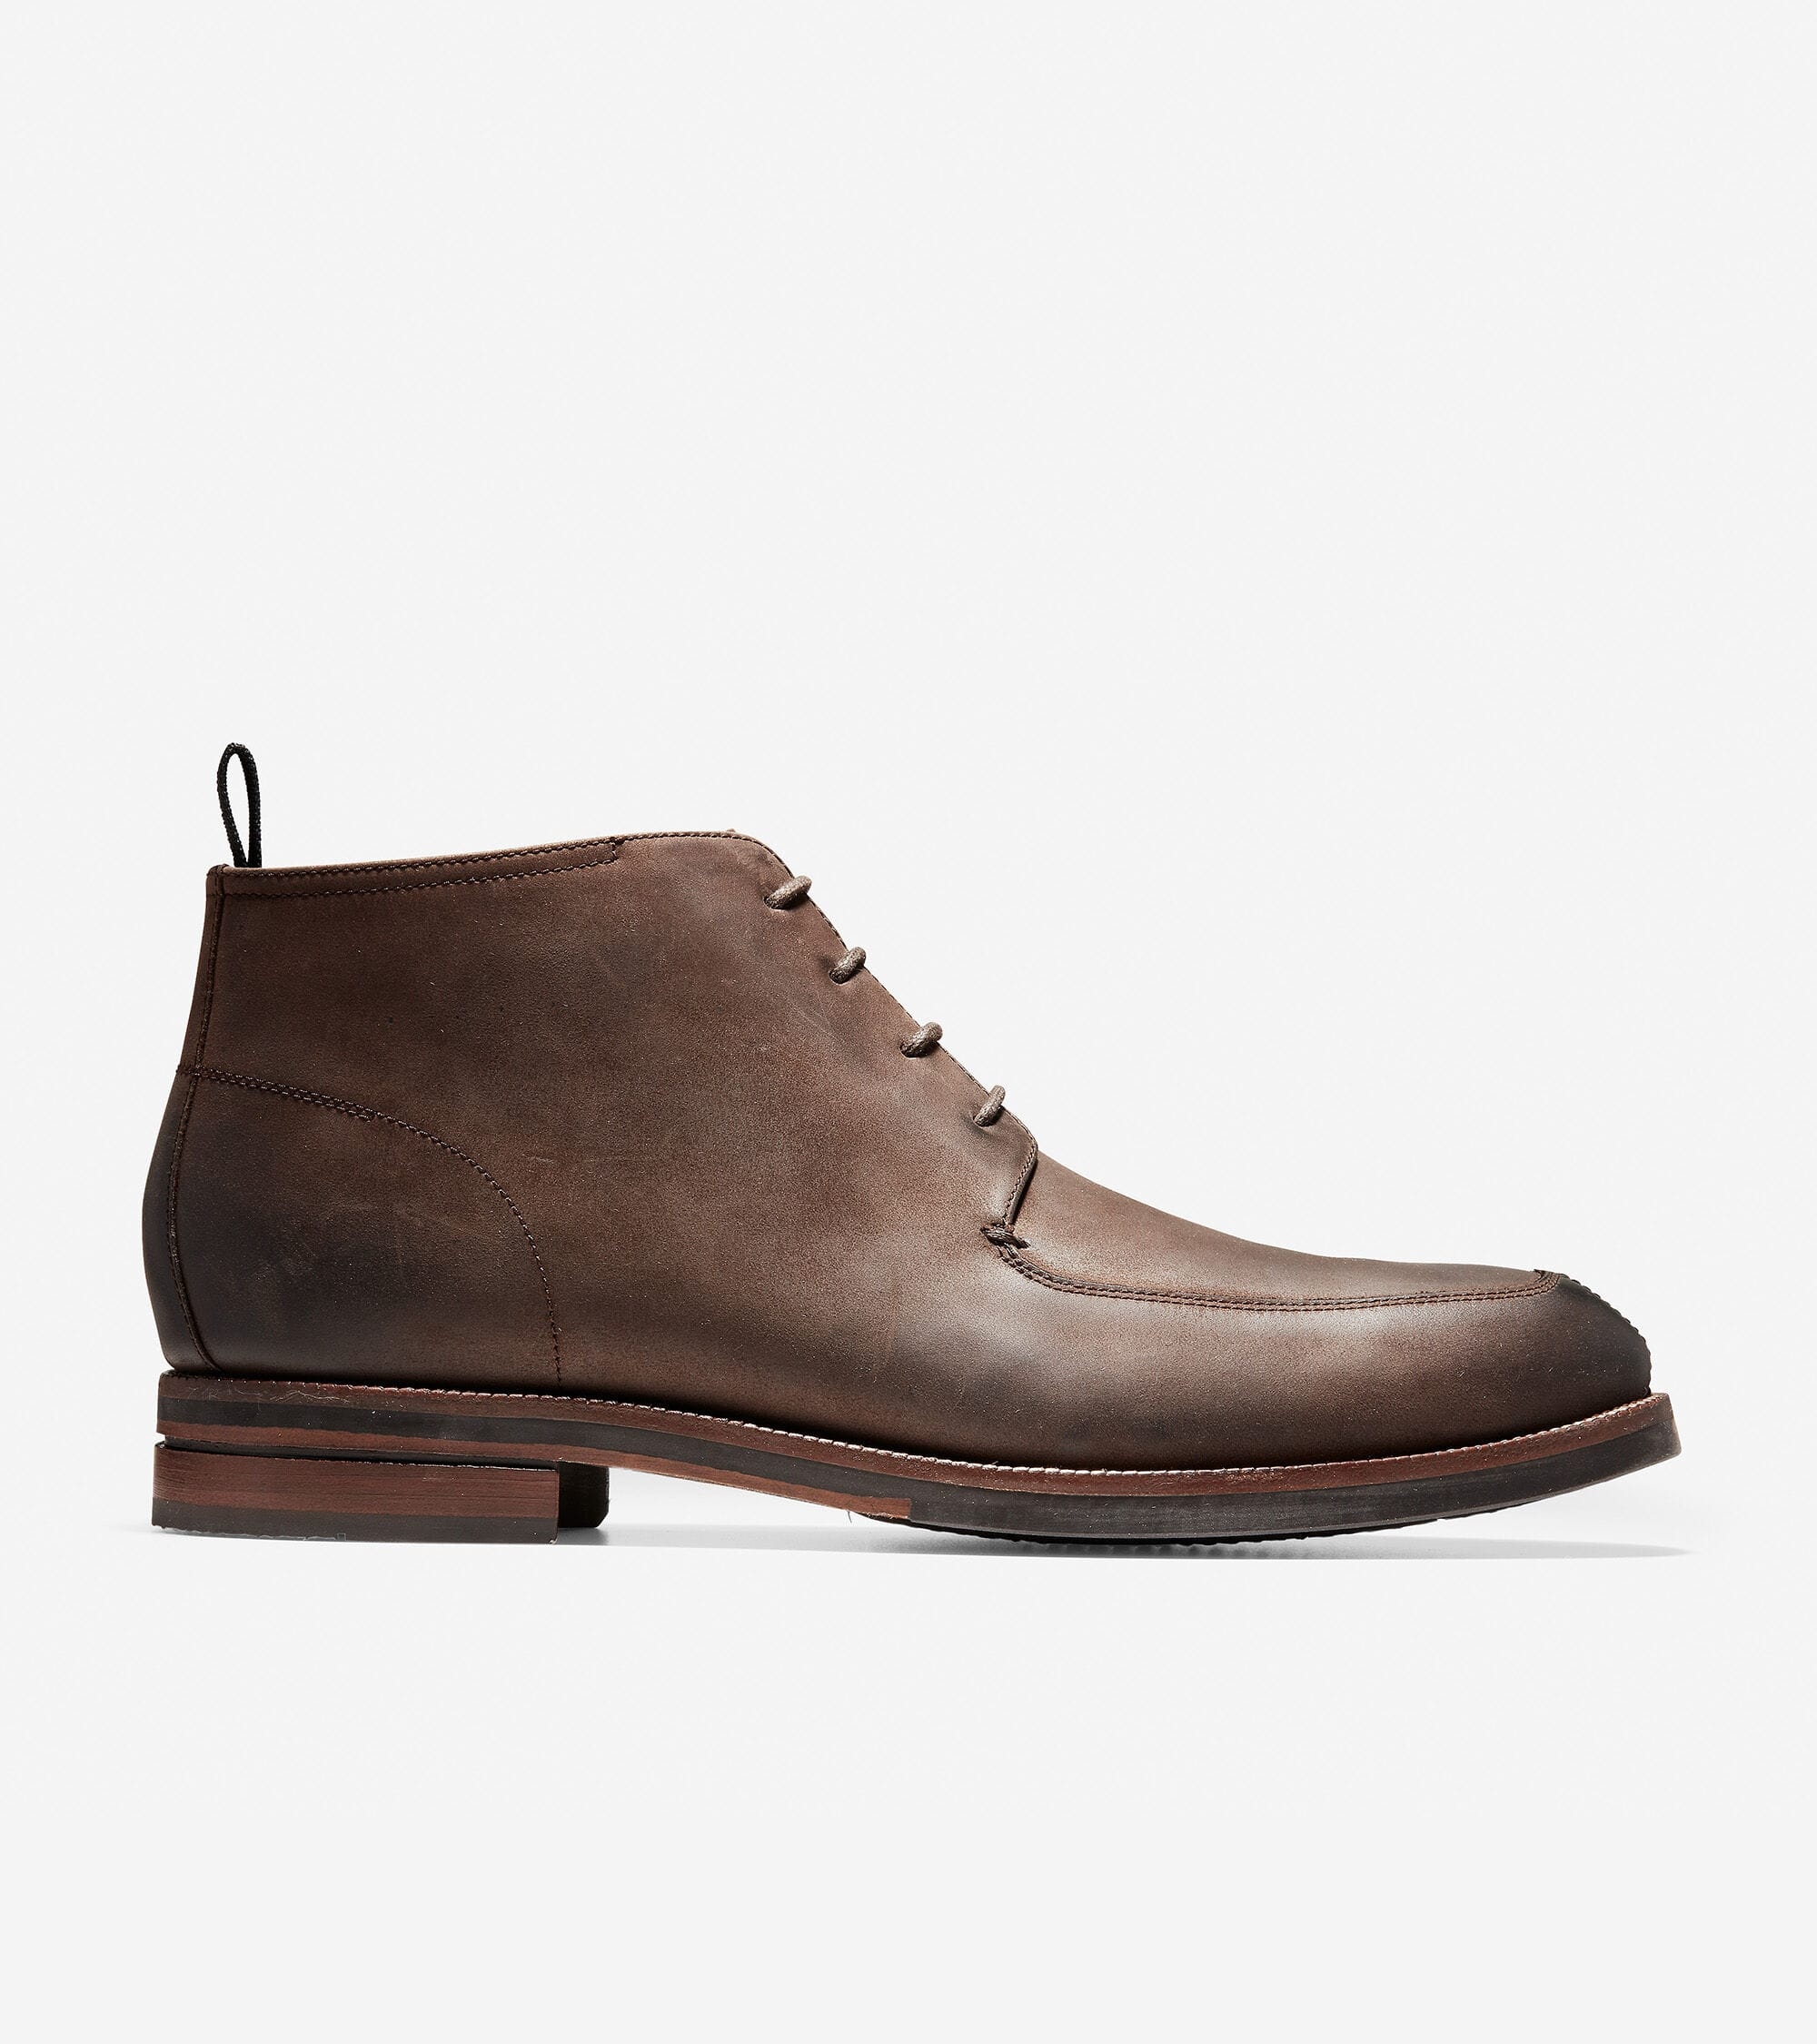 40% off at Check Out at Cole Haan